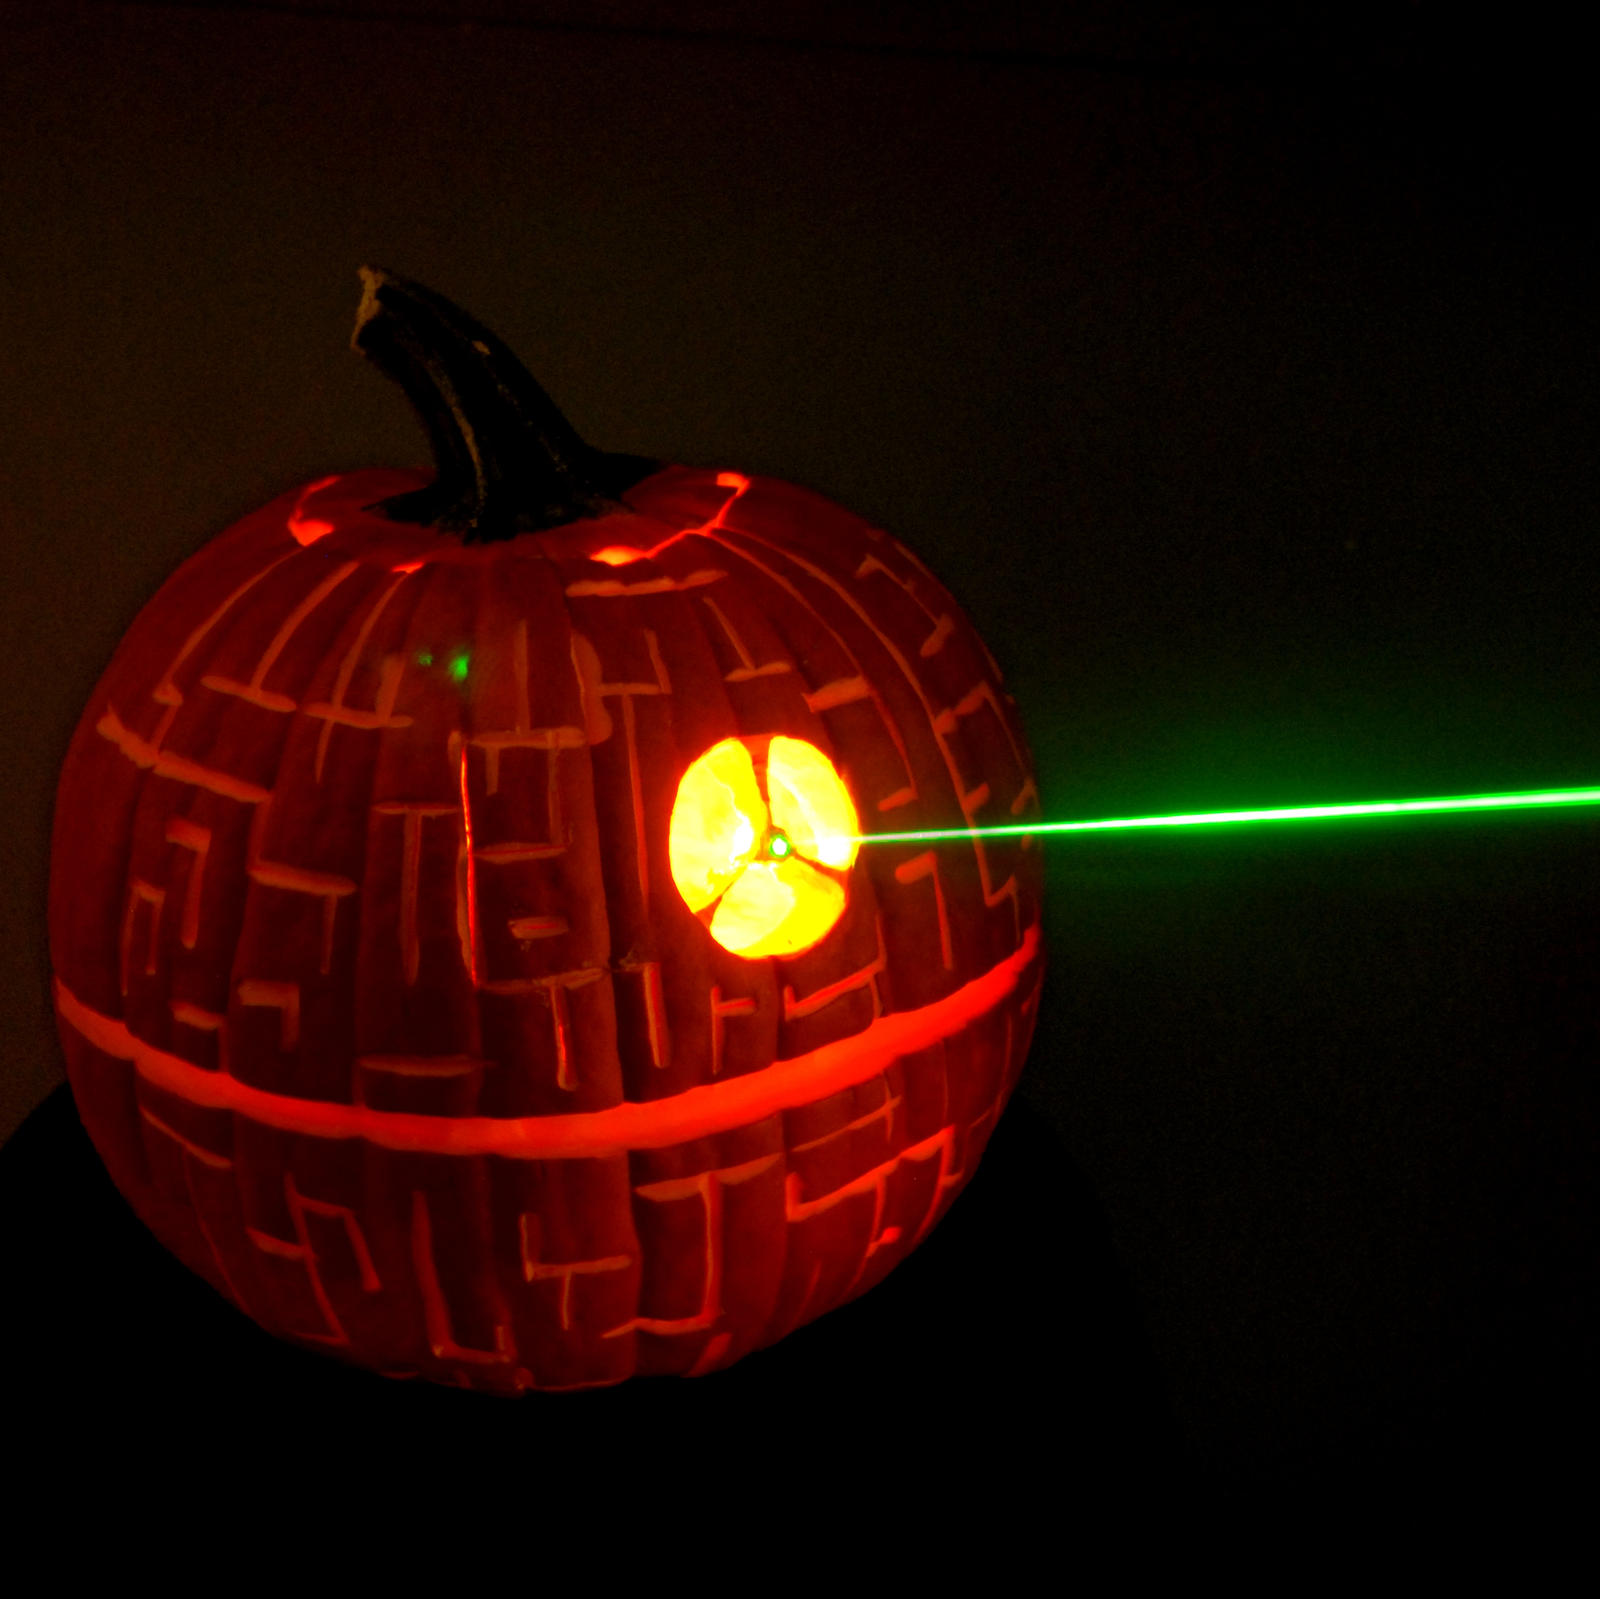 Death Star Pumpkin With Lasers by Bonedaddybruce